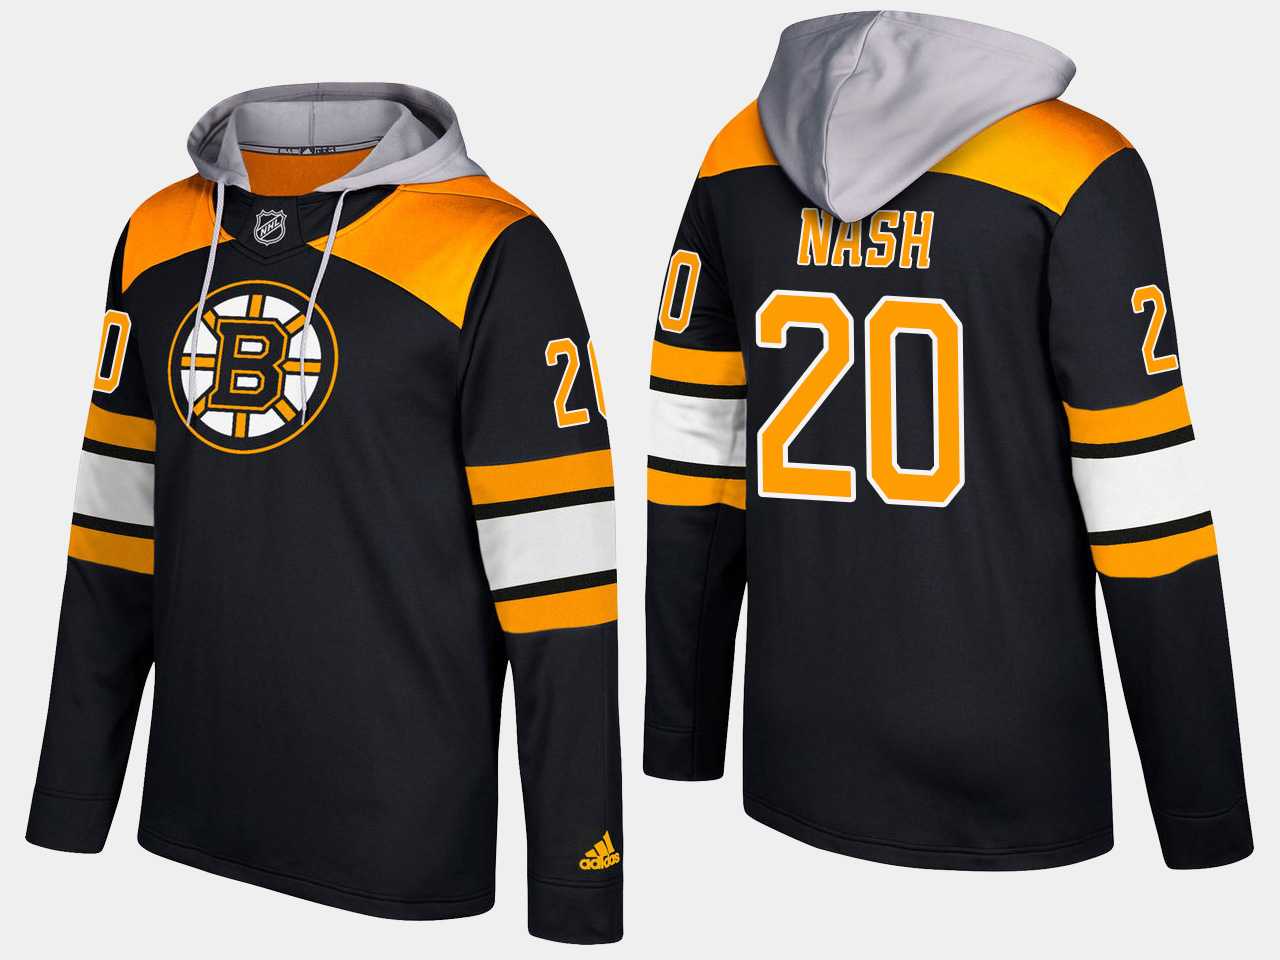 Men NHL Boston bruins 20 riley nash black hoodie